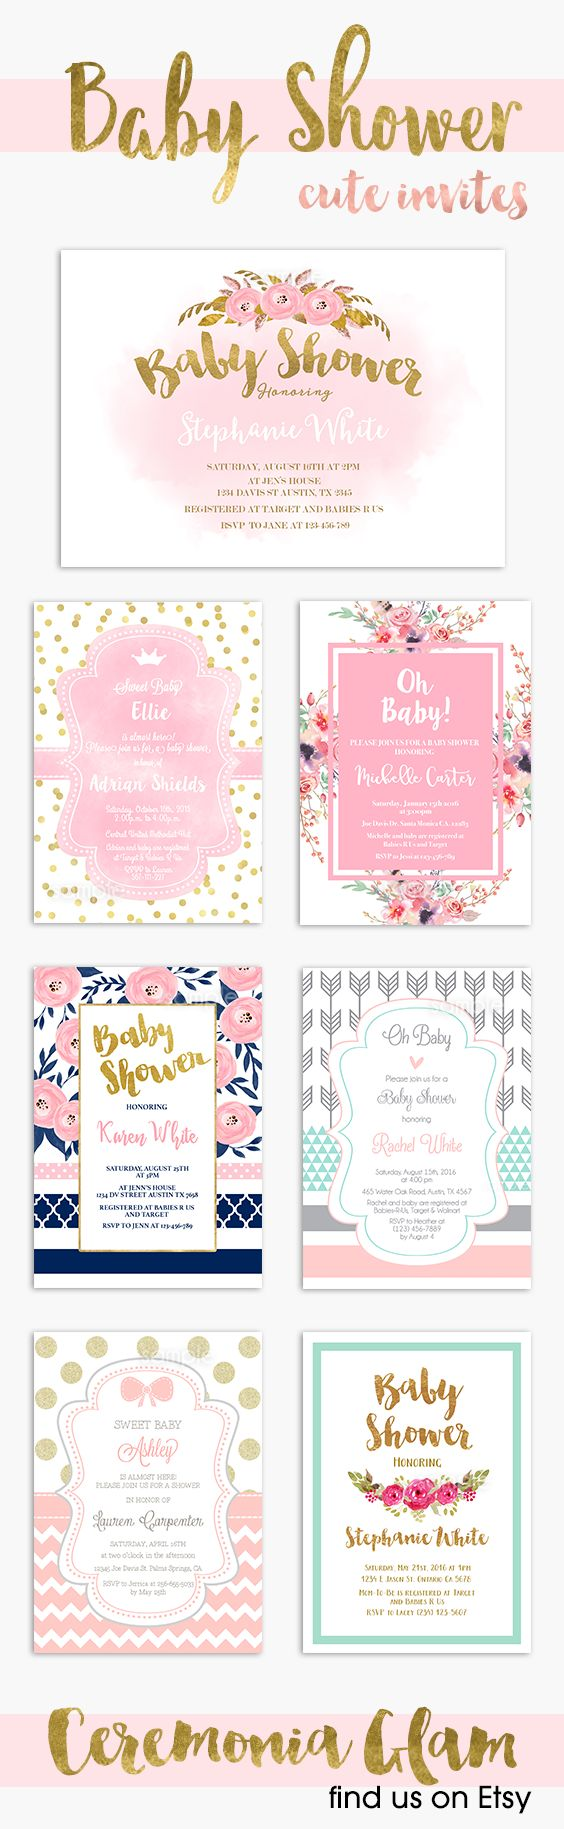 Baby shower invitation | Baby shower invitations ...